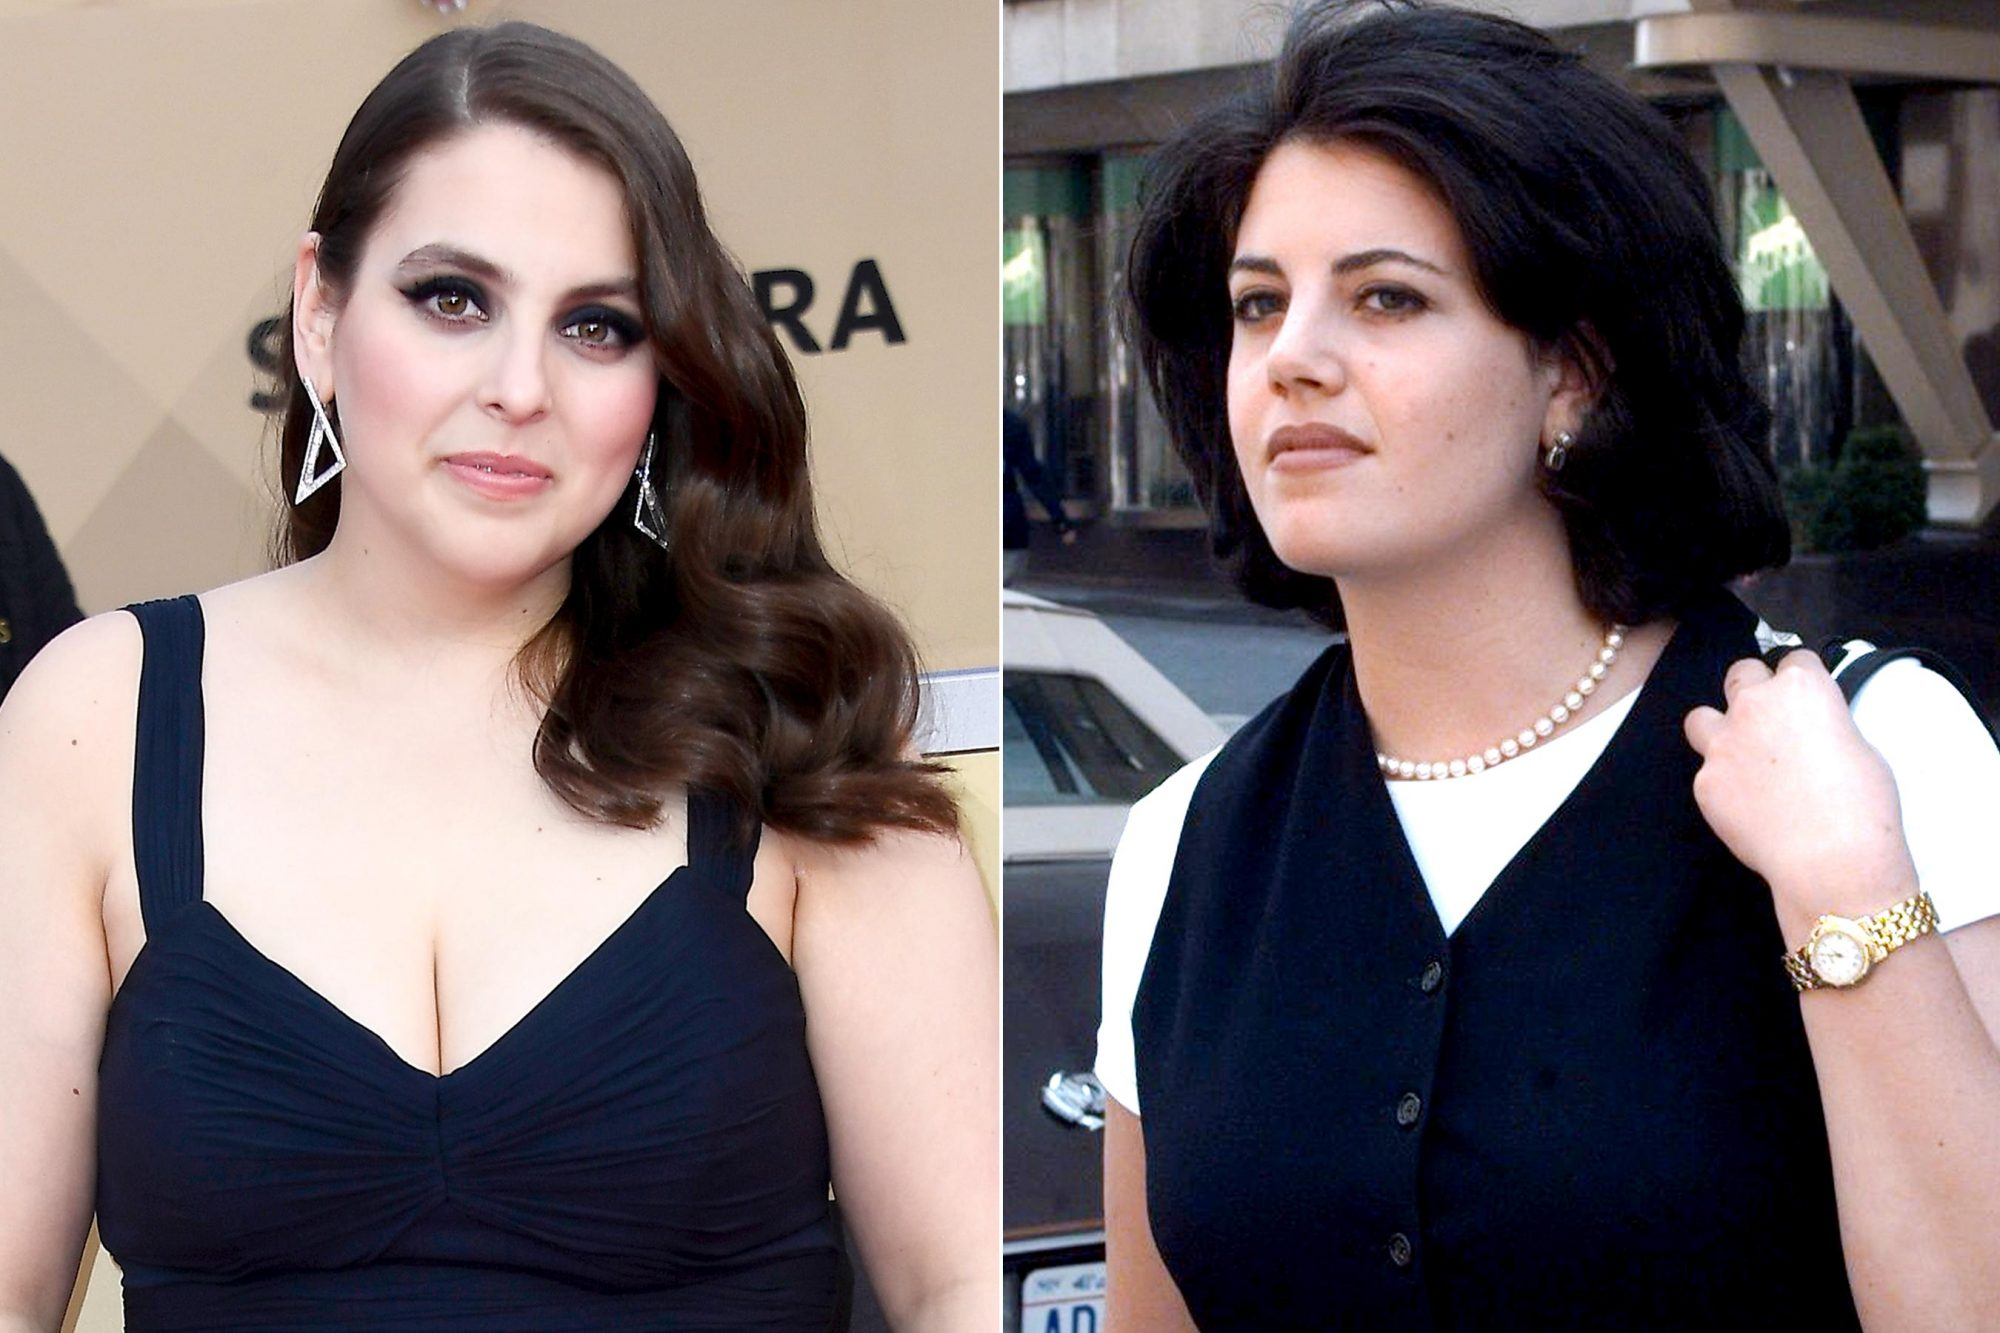 LOS ANGELES, CA - JANUARY 21: Actor Beanie Feldstein attends the 24th Annual Screen ActorsGuild Awards at The Shrine Auditorium on January 21, 2018 in Los Angeles, California. (Photo by Frazer Harrison/Getty Images) UNITED STATES - JUNE 03: Monica Lewinsky leaving the office of attorney Plato Cacheris. (Photo by Harry Hamburg/NY Daily News Archive via Getty Images)